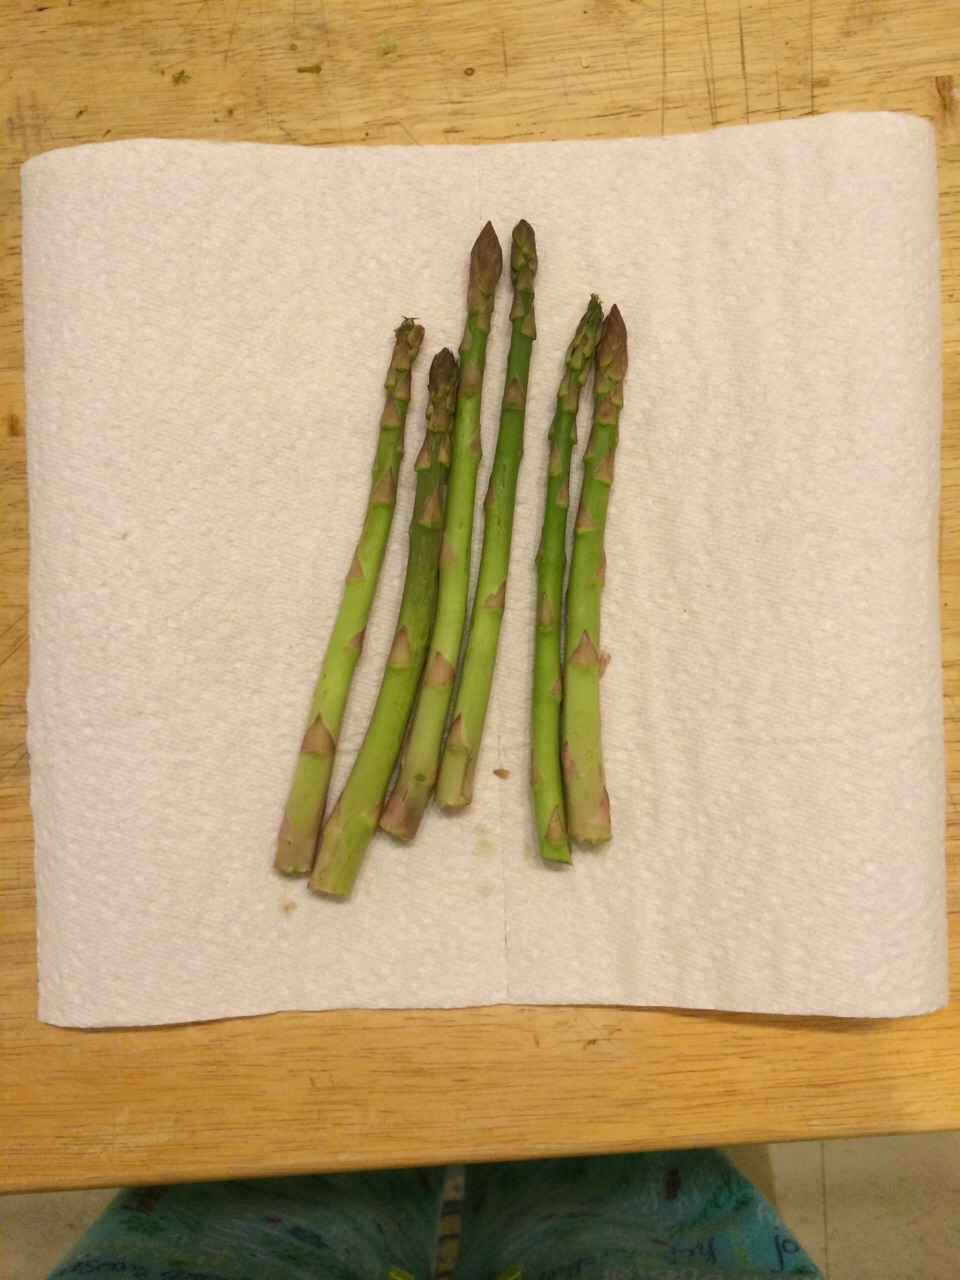 Place asparagus in paper towl